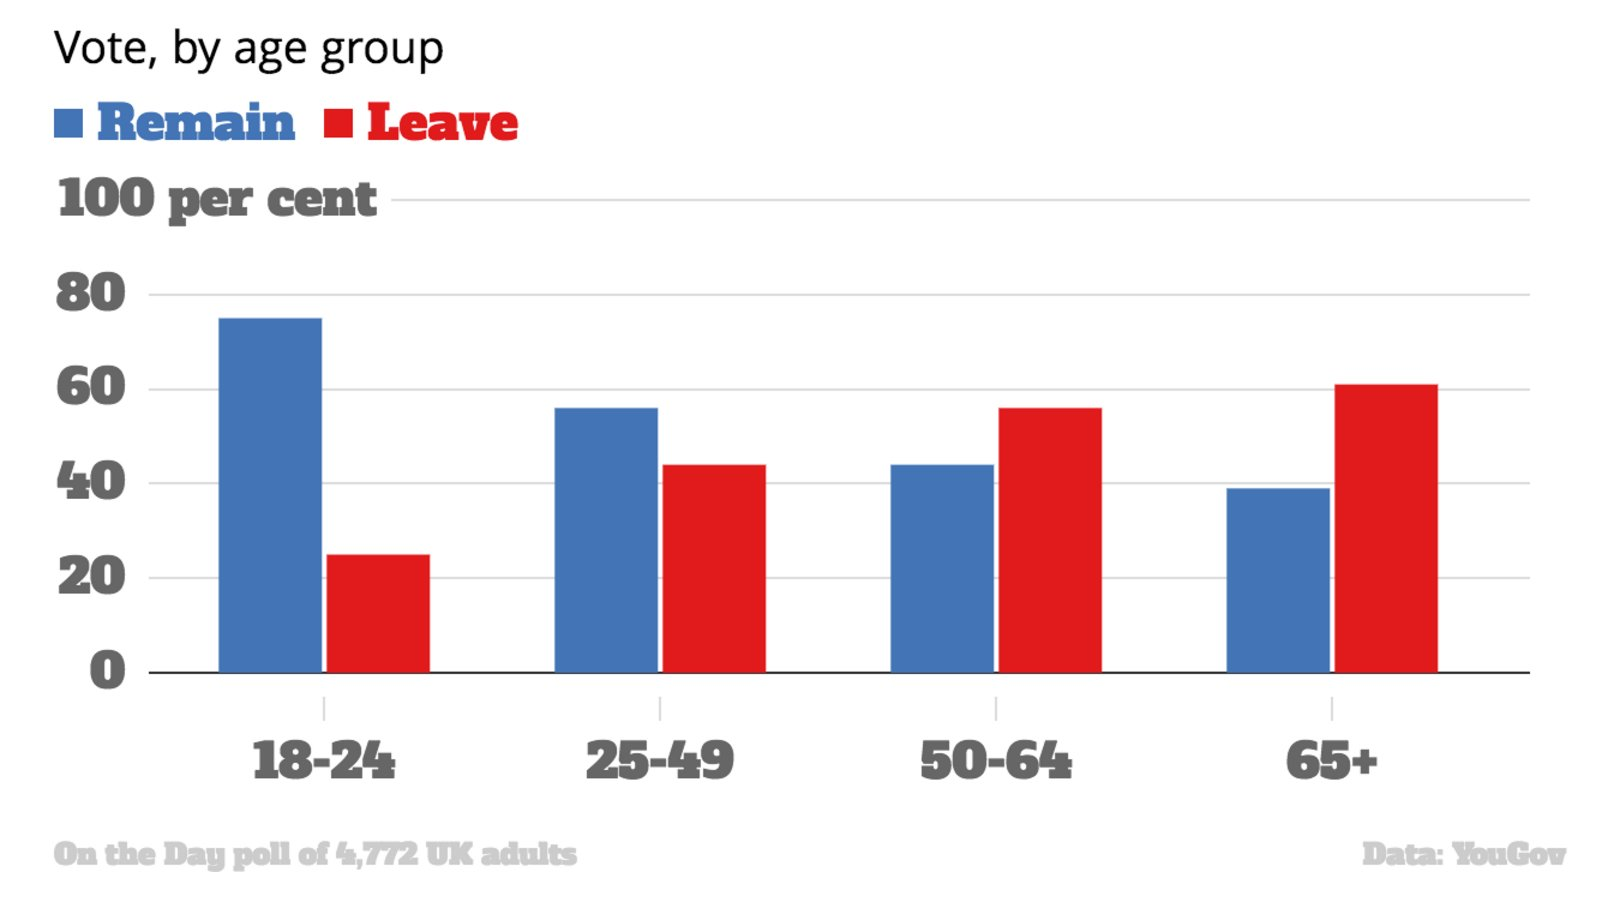 Remain/Leave as a function of voter age.